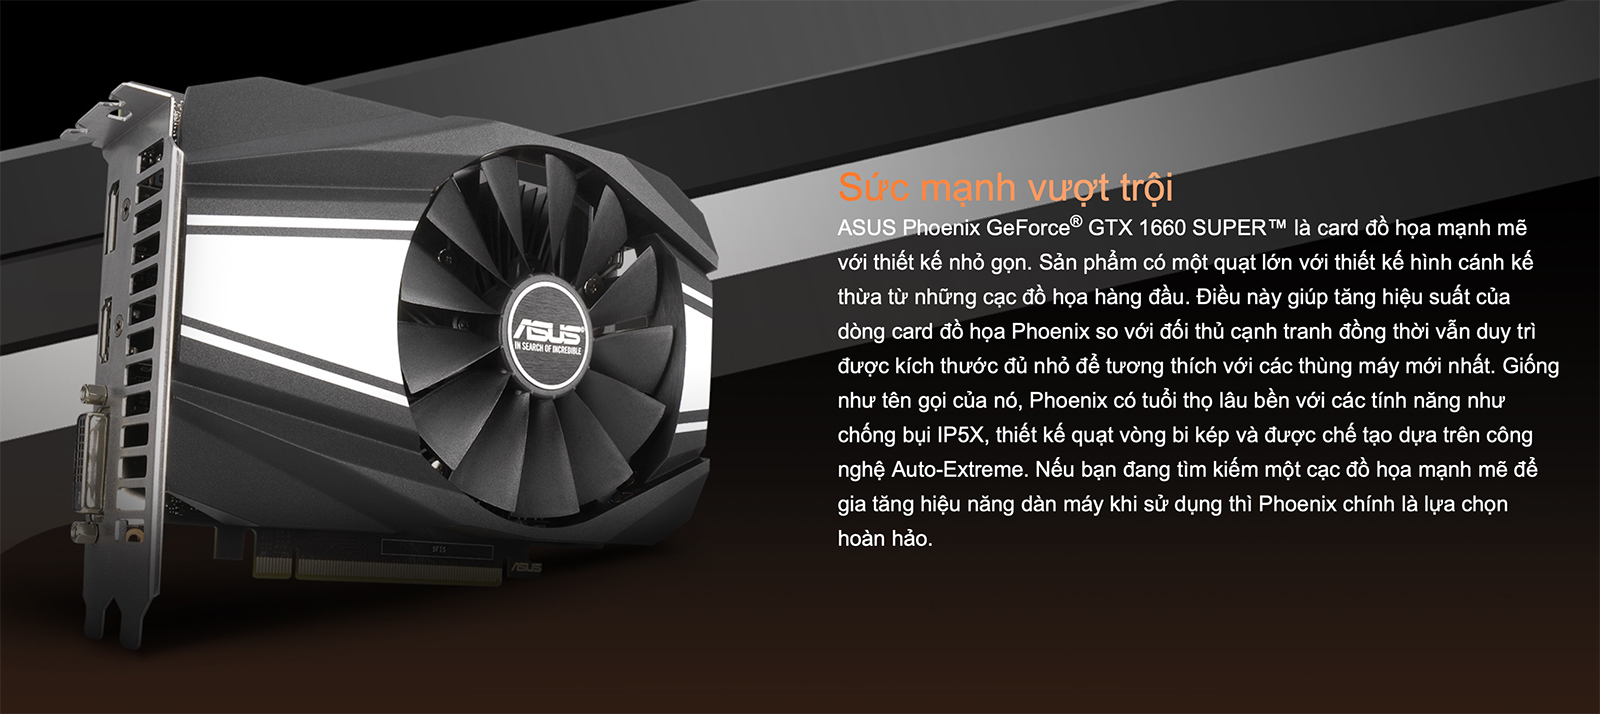 Asus Phoenix Geforce® Gtx 1660 Super™ 6gb Gddr6 Post 01